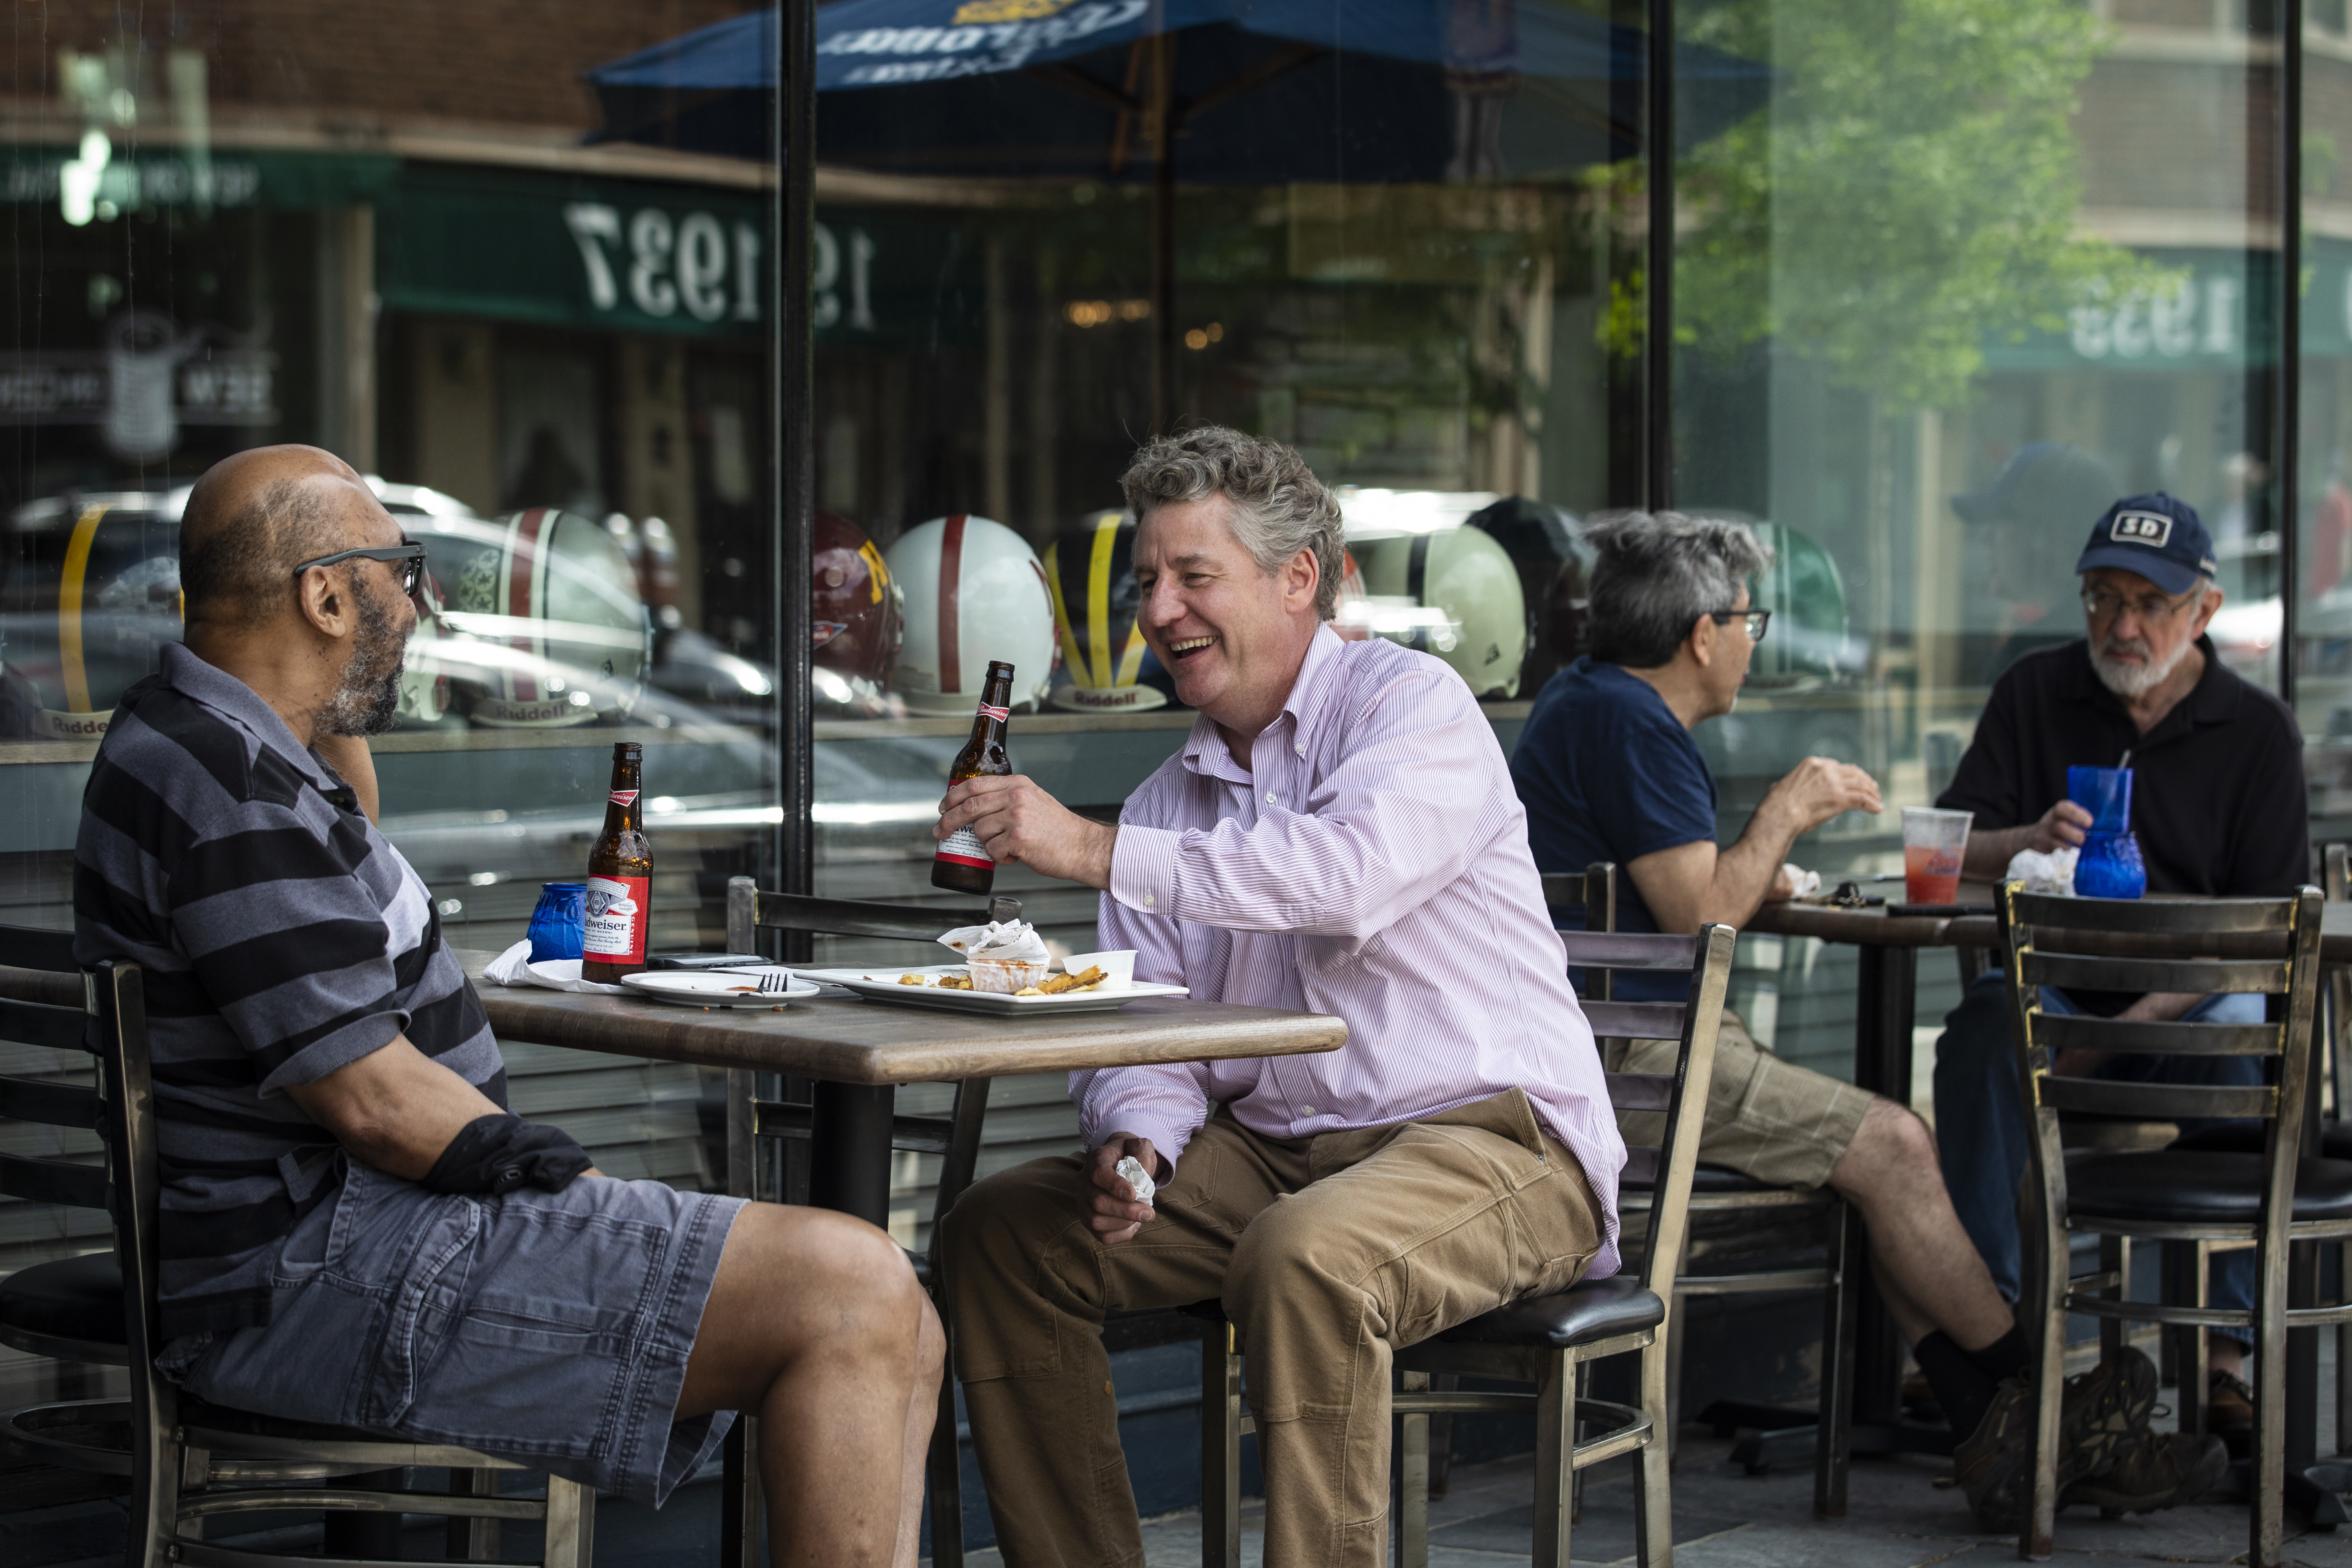 Bill Luby (center), 54, laughs with his friend, Calvin Grant, 53, both from Evanston, as they eat and drink together on the patio at Bluestone, 1932 Central St. in Evanston, Friday afternoon, May 29, 2020. Illinois entered Phase 3 of Gov. J.B. Pritzker's reopening plan for the state Friday, allowing many nonessential businesses to reopen with guidelines for social distancing and capacity limits.